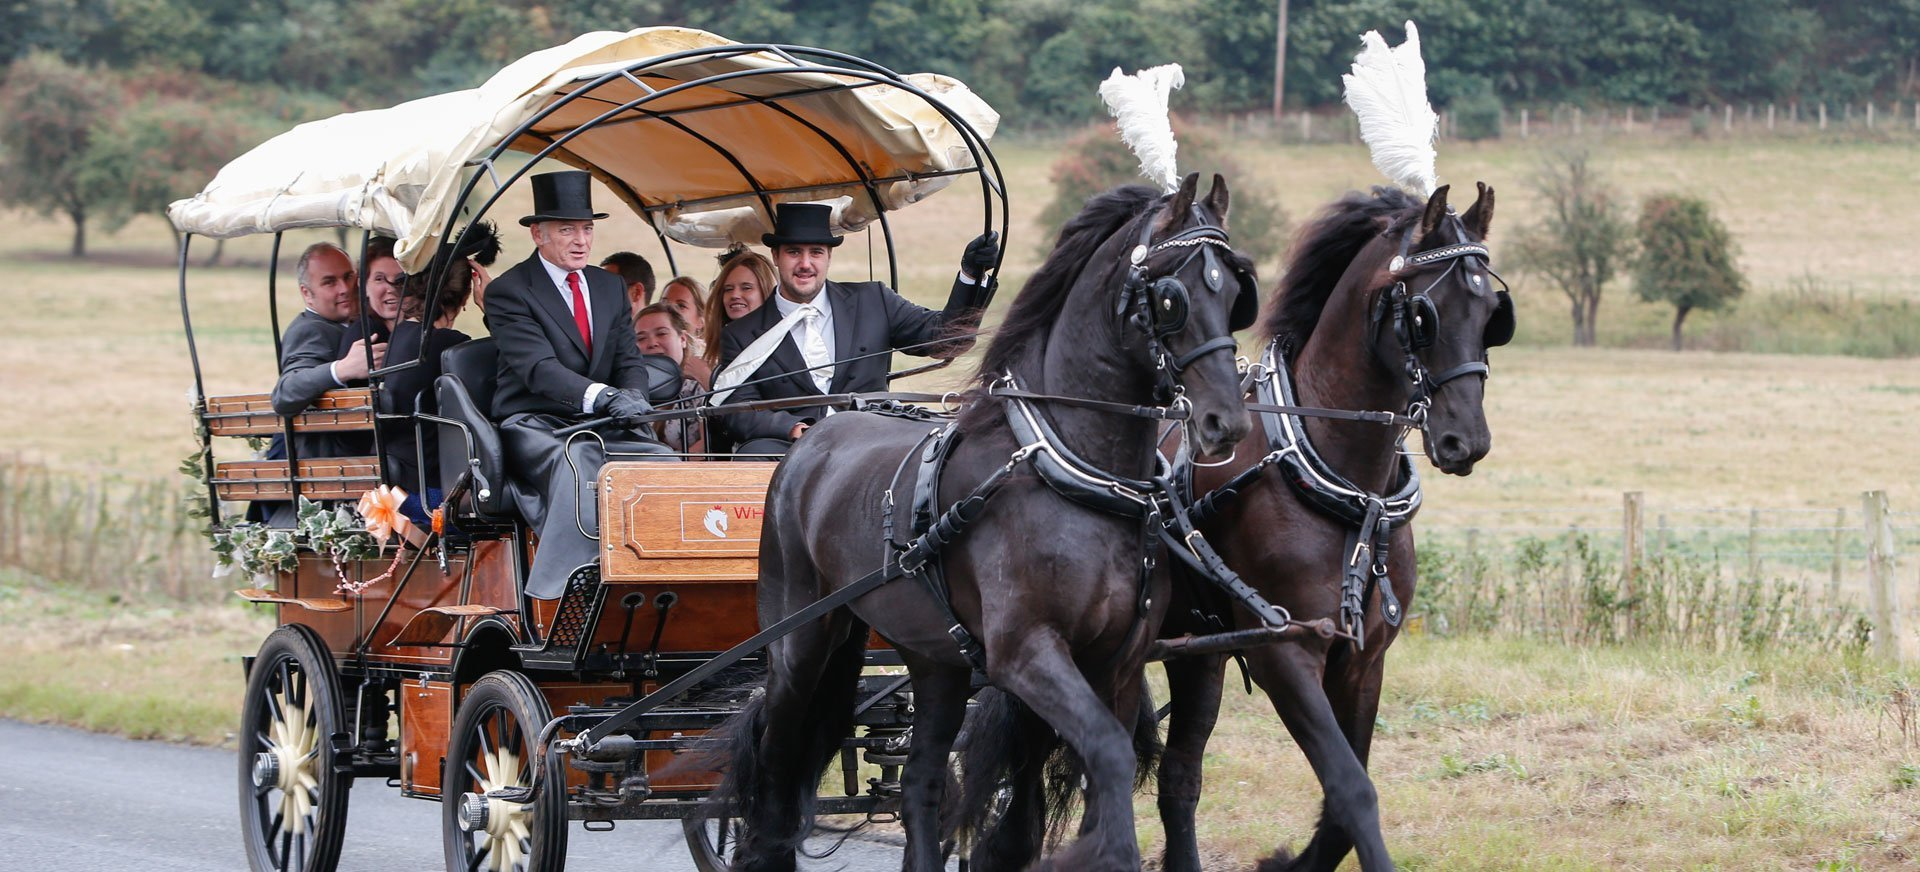 Funeral hearse carriages